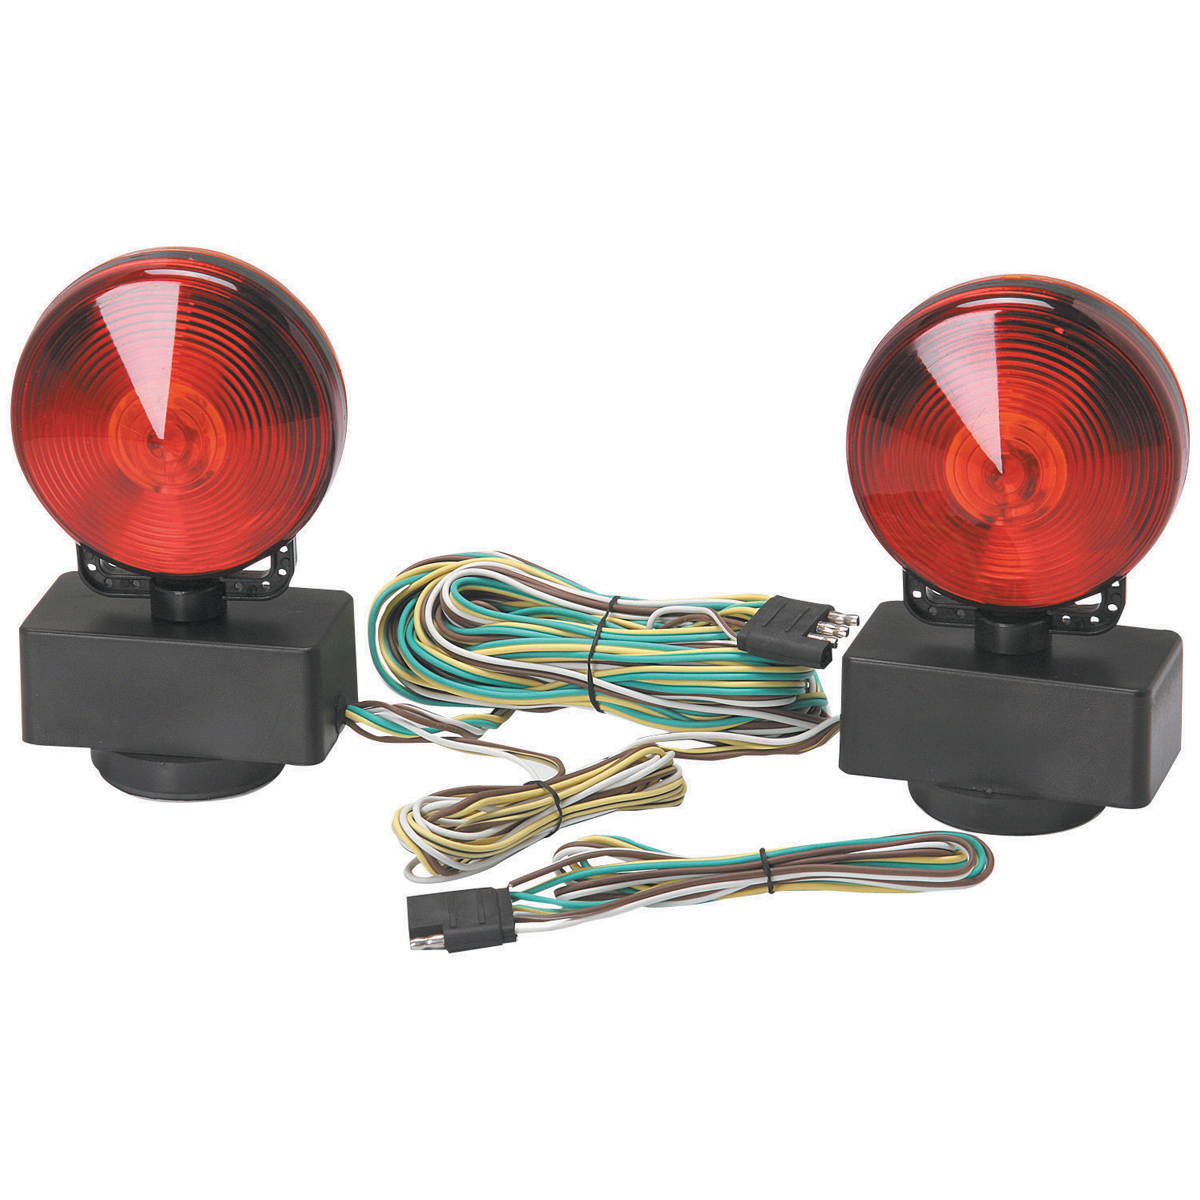 Shop Lights At Harbor Freight: 12 Volt Magnetic Towing Light Kit